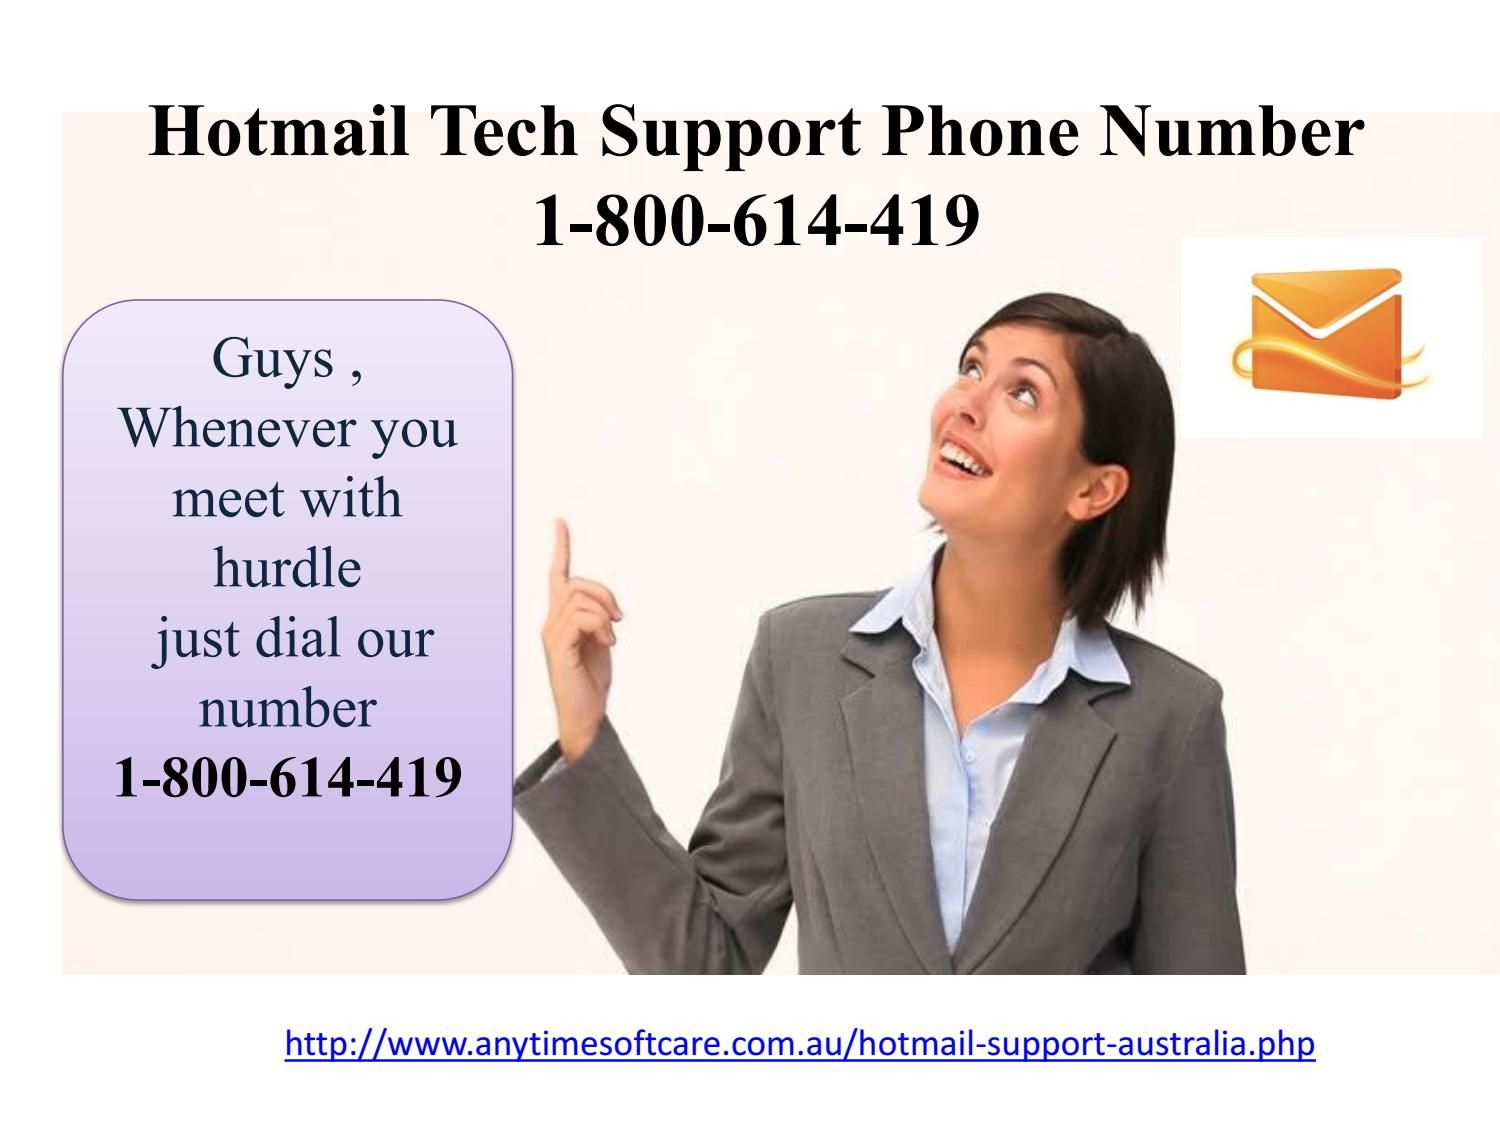 Give Us Call at Hotmail Tech Support Phone Number 1-800-614-419